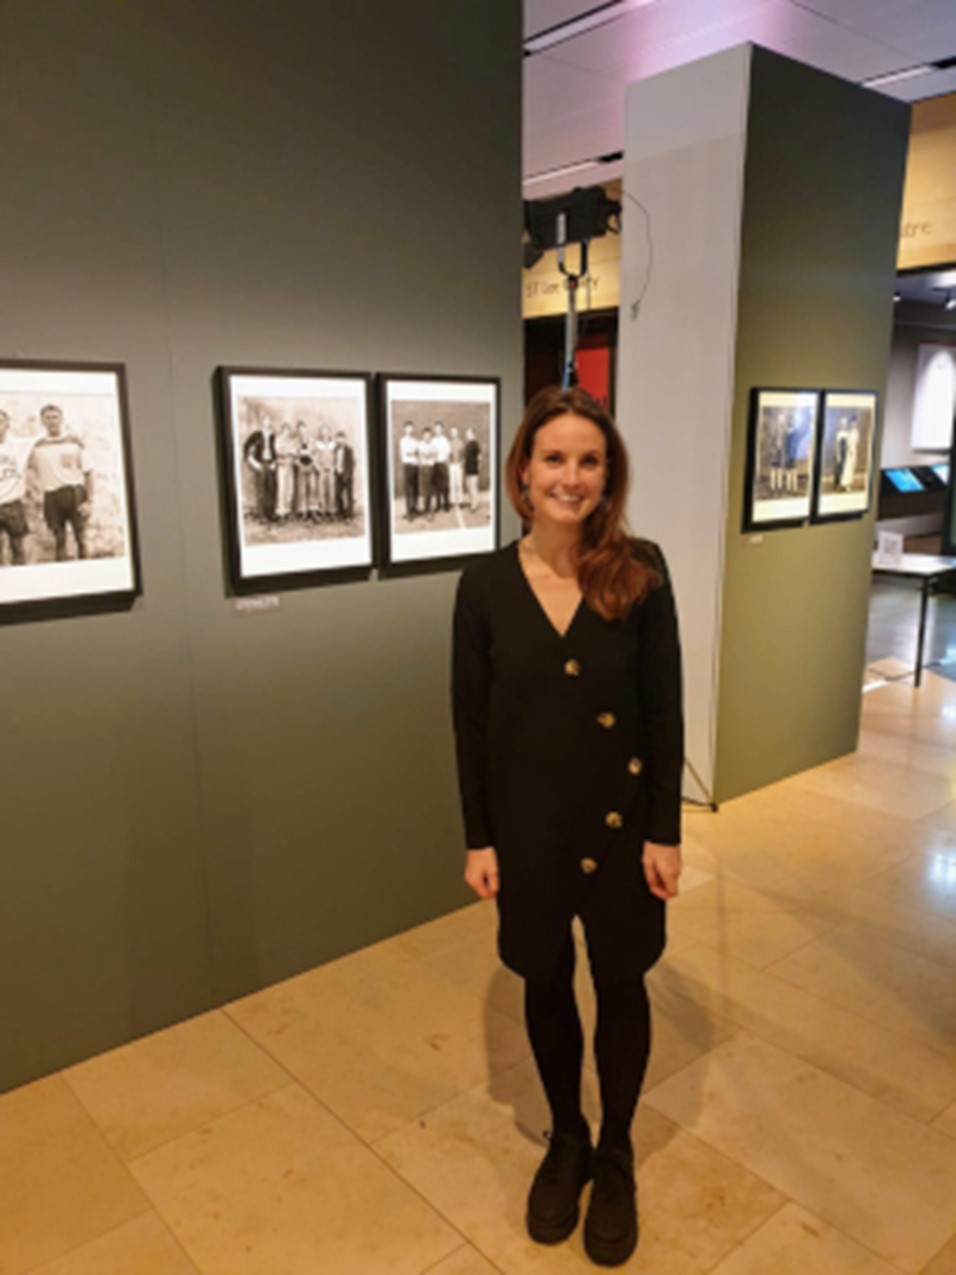 Kelly Burchmore in front of the Daniel Meadows display, Weston Library, Oct 2019